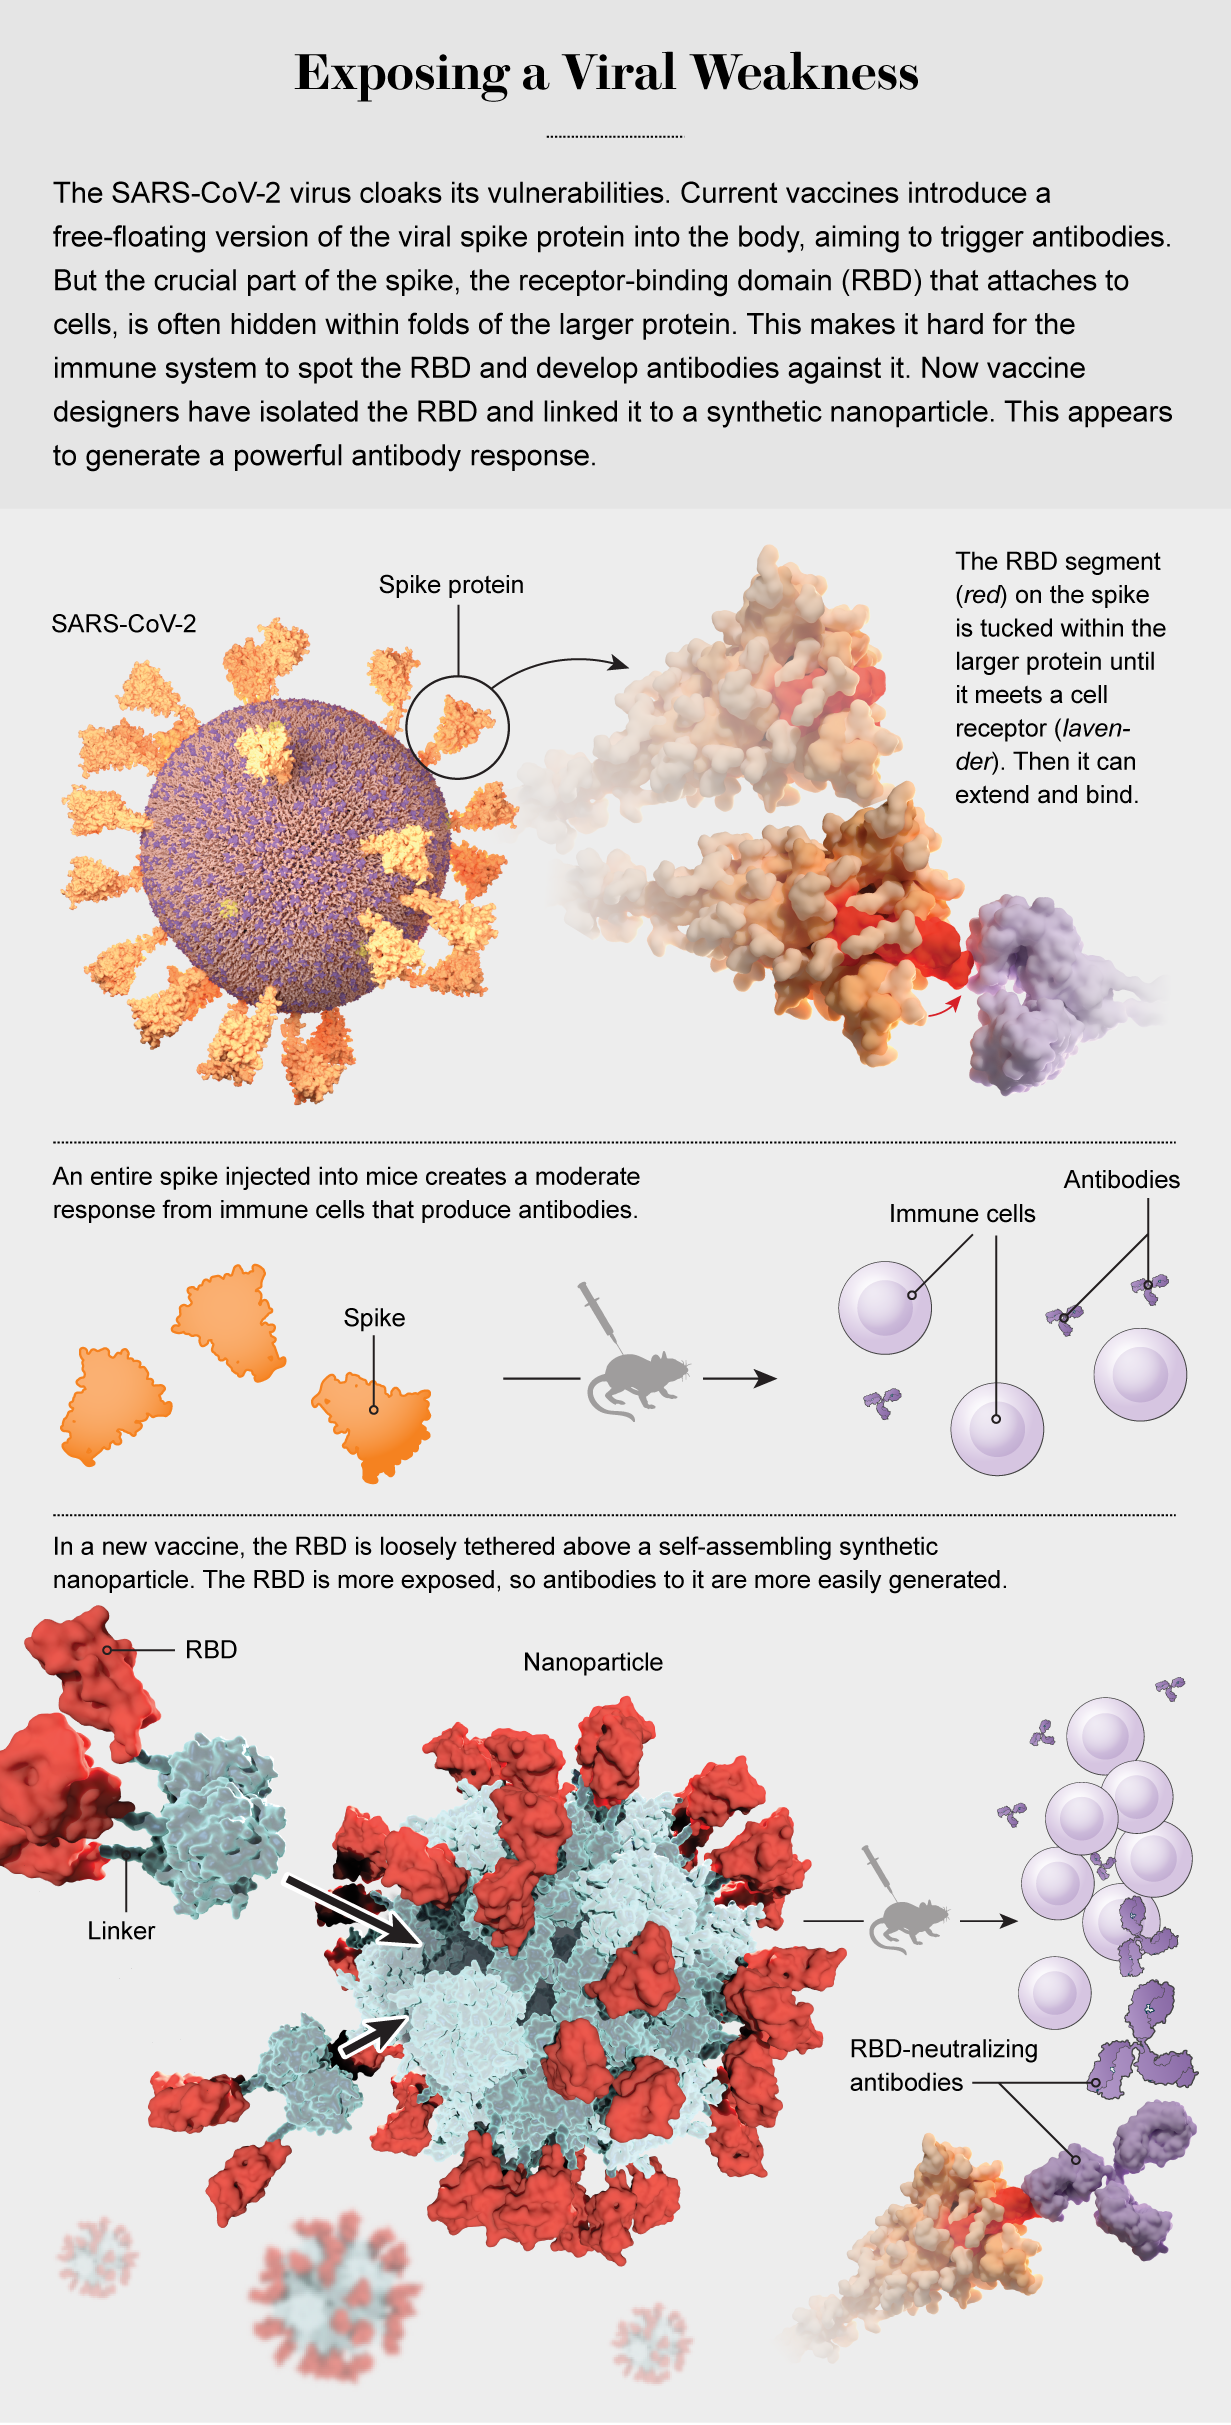 Graphic shows how injecting nanoparticles with SARS-CoV-2 RBD segments attached can generate antibodies in mice.